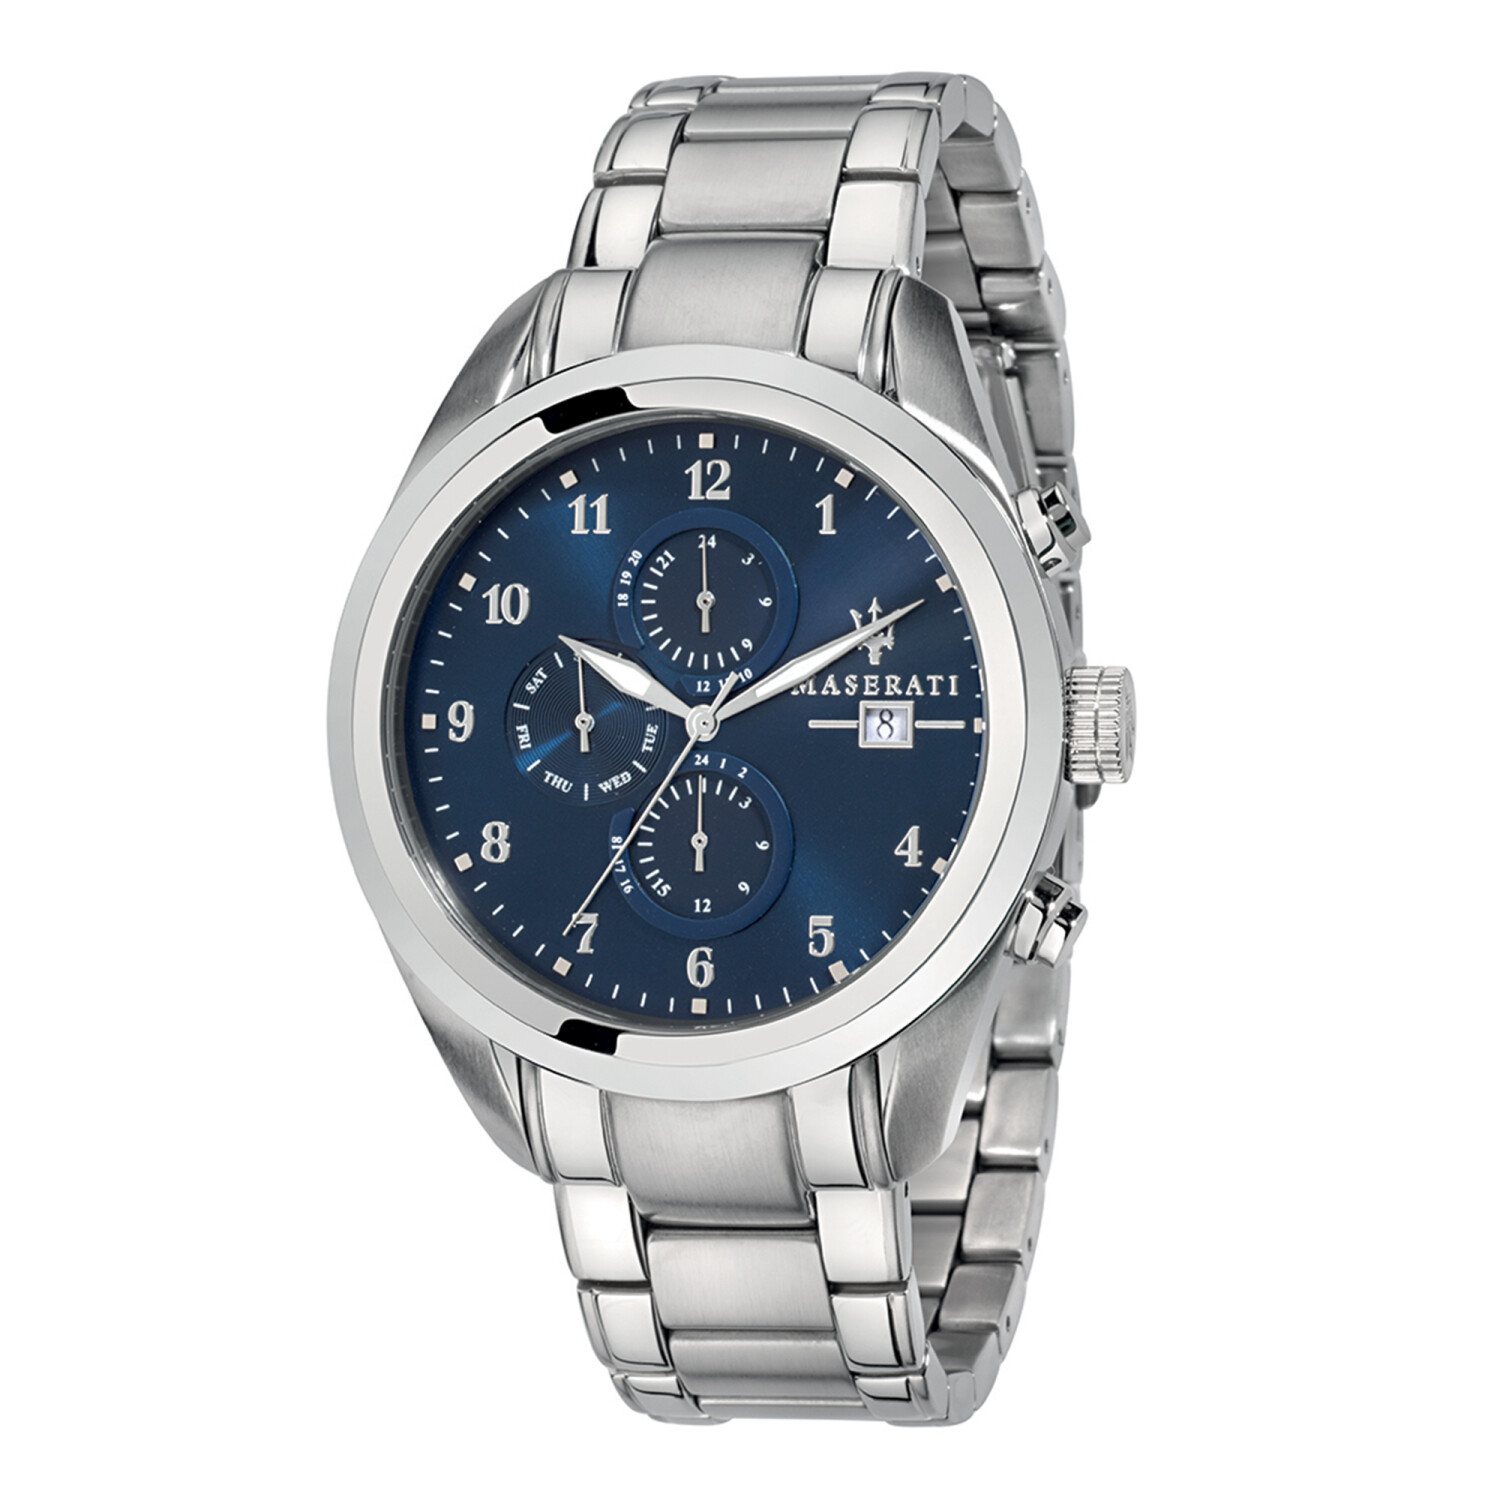 Maserati Watch R8853112505 Traguardo 24-Hour Display, Date Window, Day Sub-dial-Blue / Stainless Steel